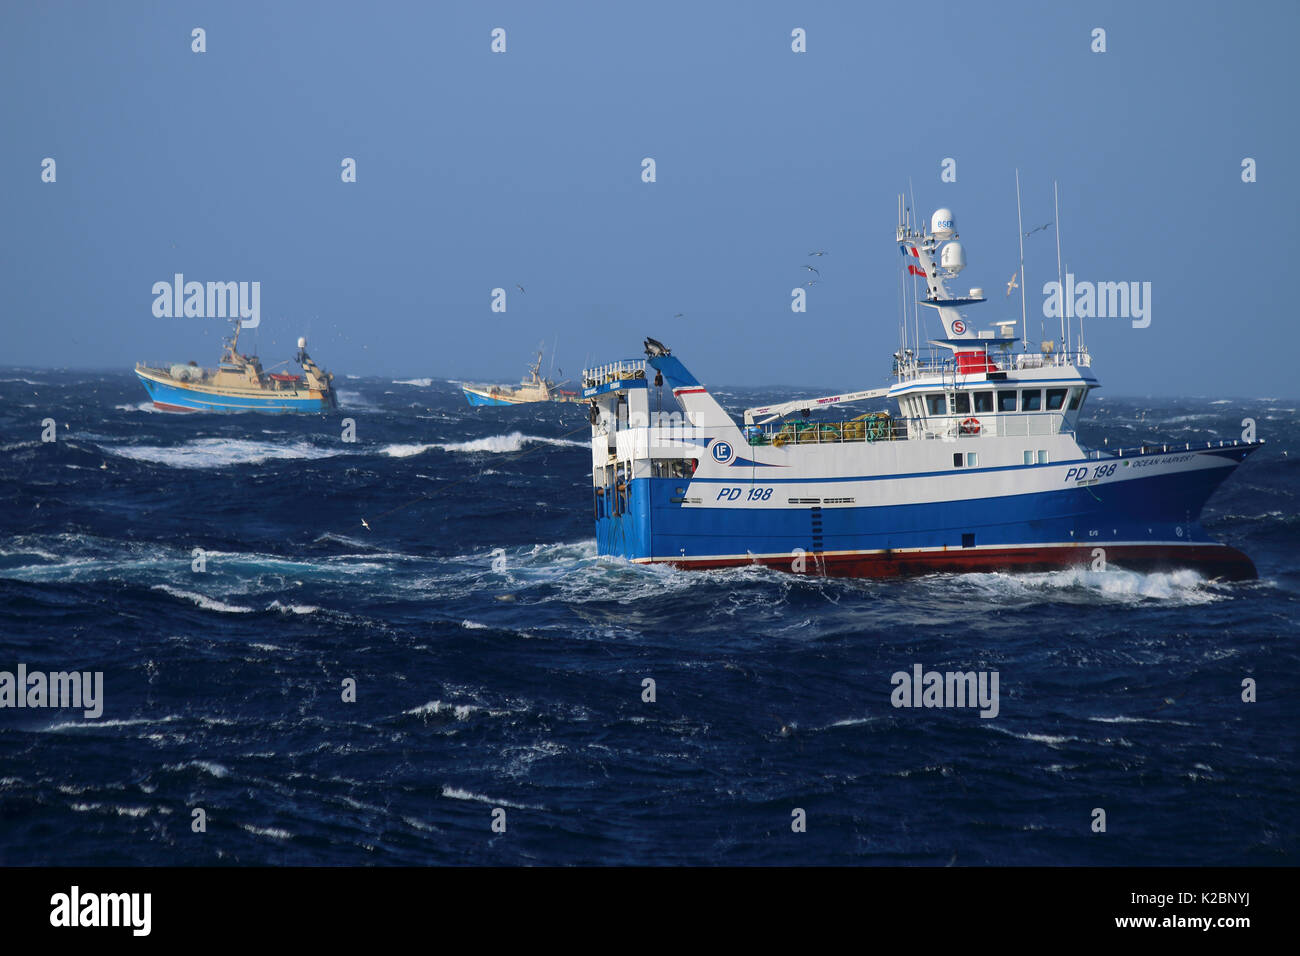 Fishing vessel 'Ocean Harvest' fishing in close proximity to faroese trawlers on the Suduroy Bank, Faroe Islands, April 2015. Property released. - Stock Image